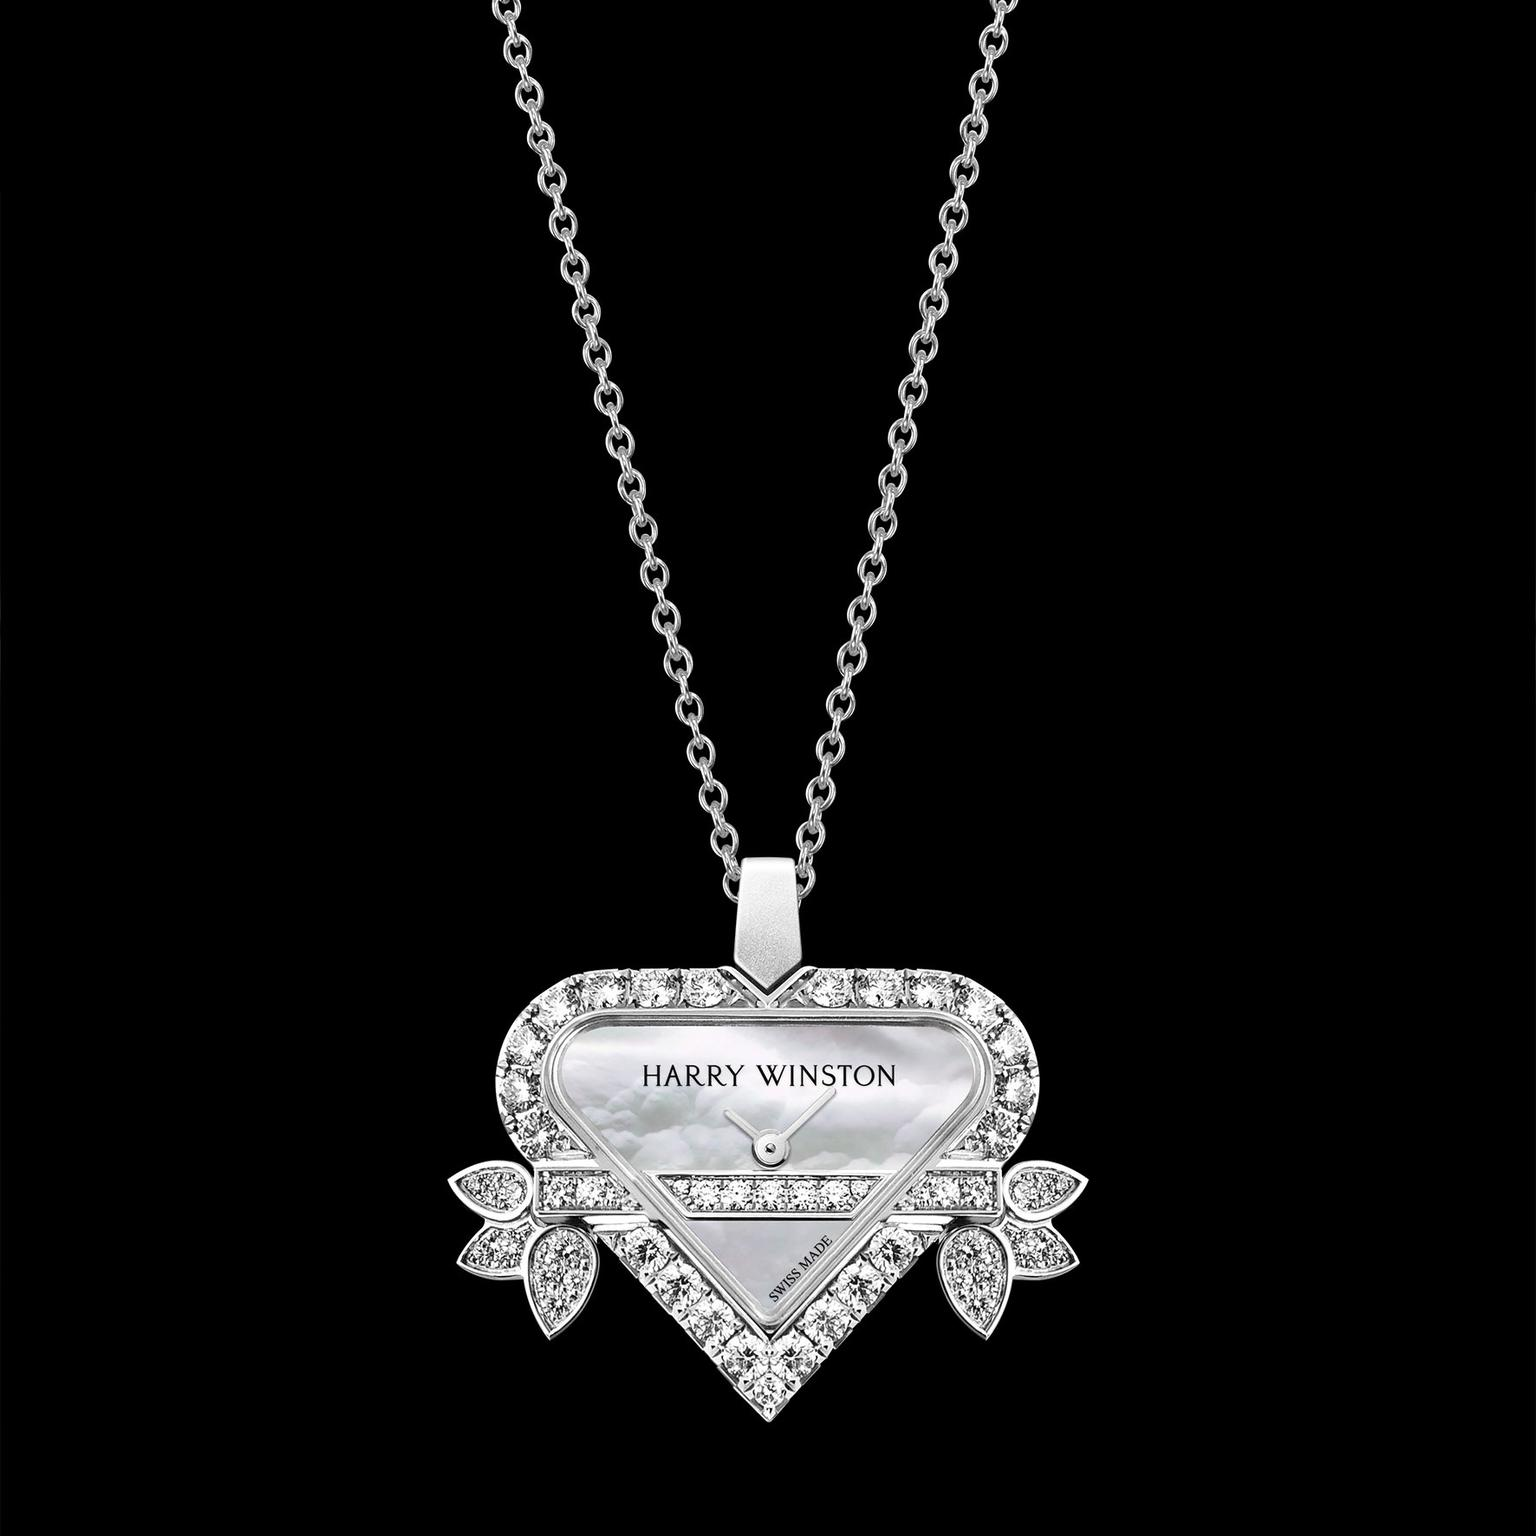 Harry Winston Rosebud white gold heart pendant watch.